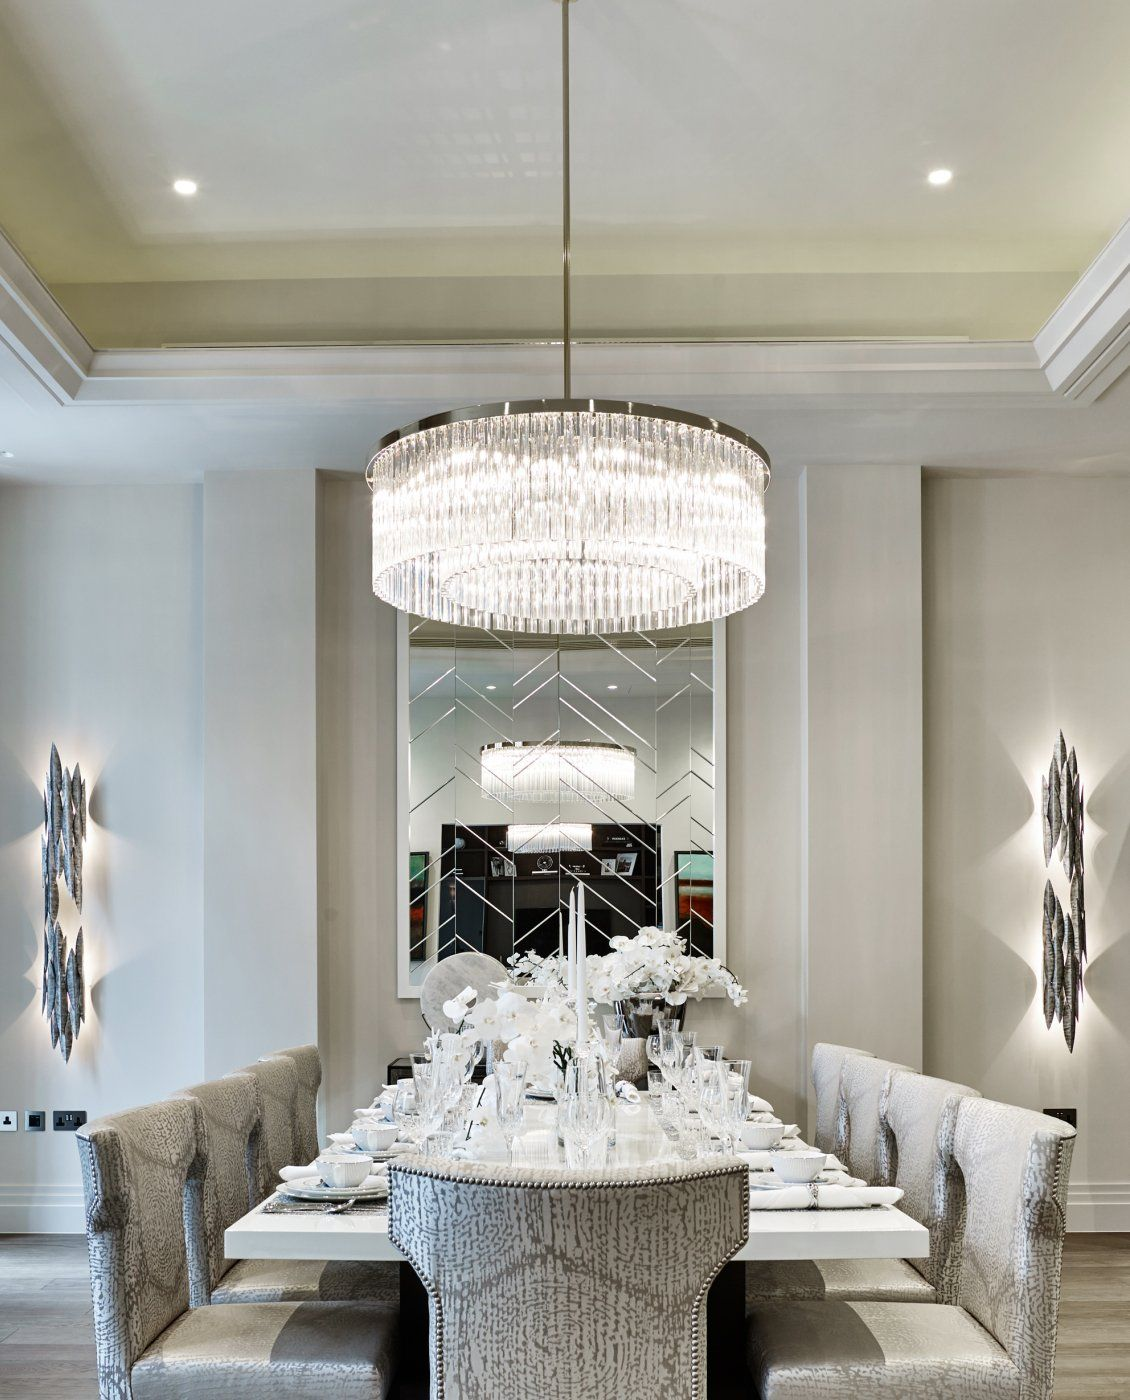 7 Luxurious Home Decor Ideaselicyon That You Will Want To Copy Fascinating Luxurious Dining Room Inspiration Design